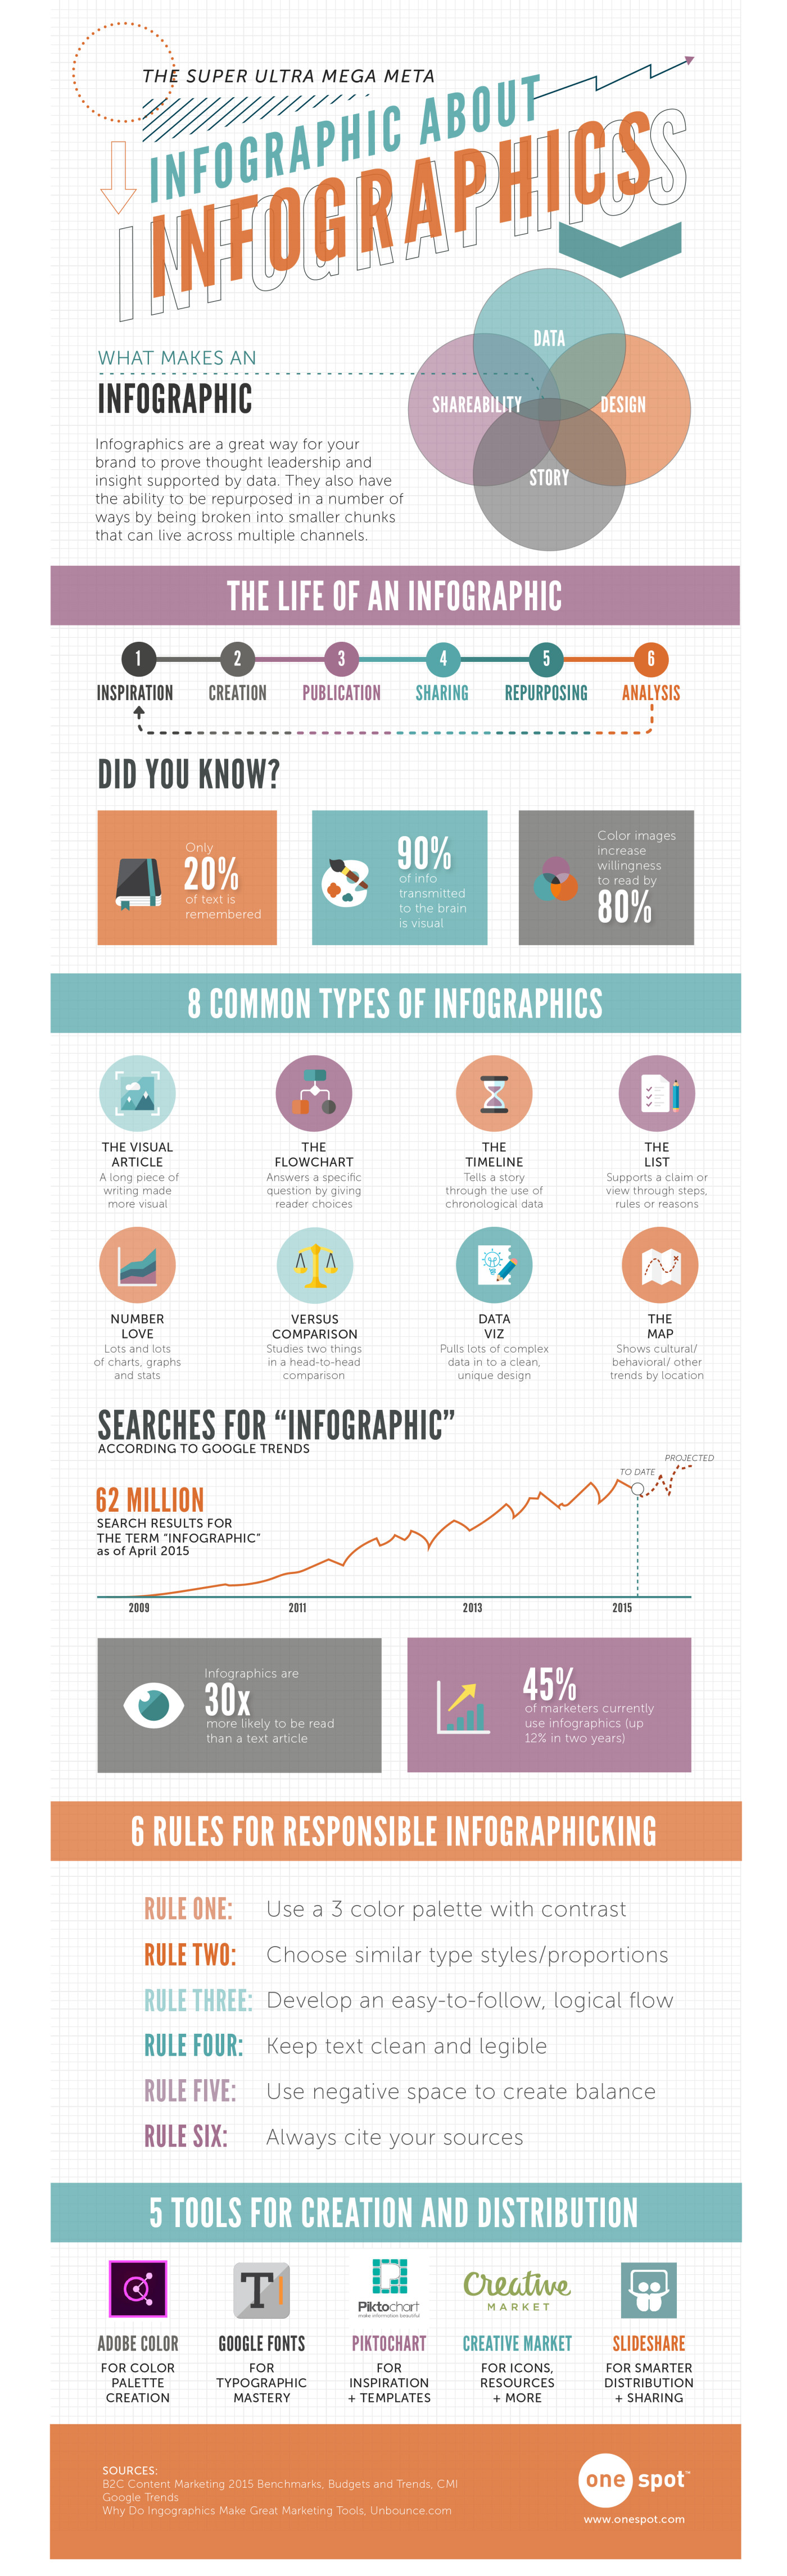 onespot-infographic-about-infographics